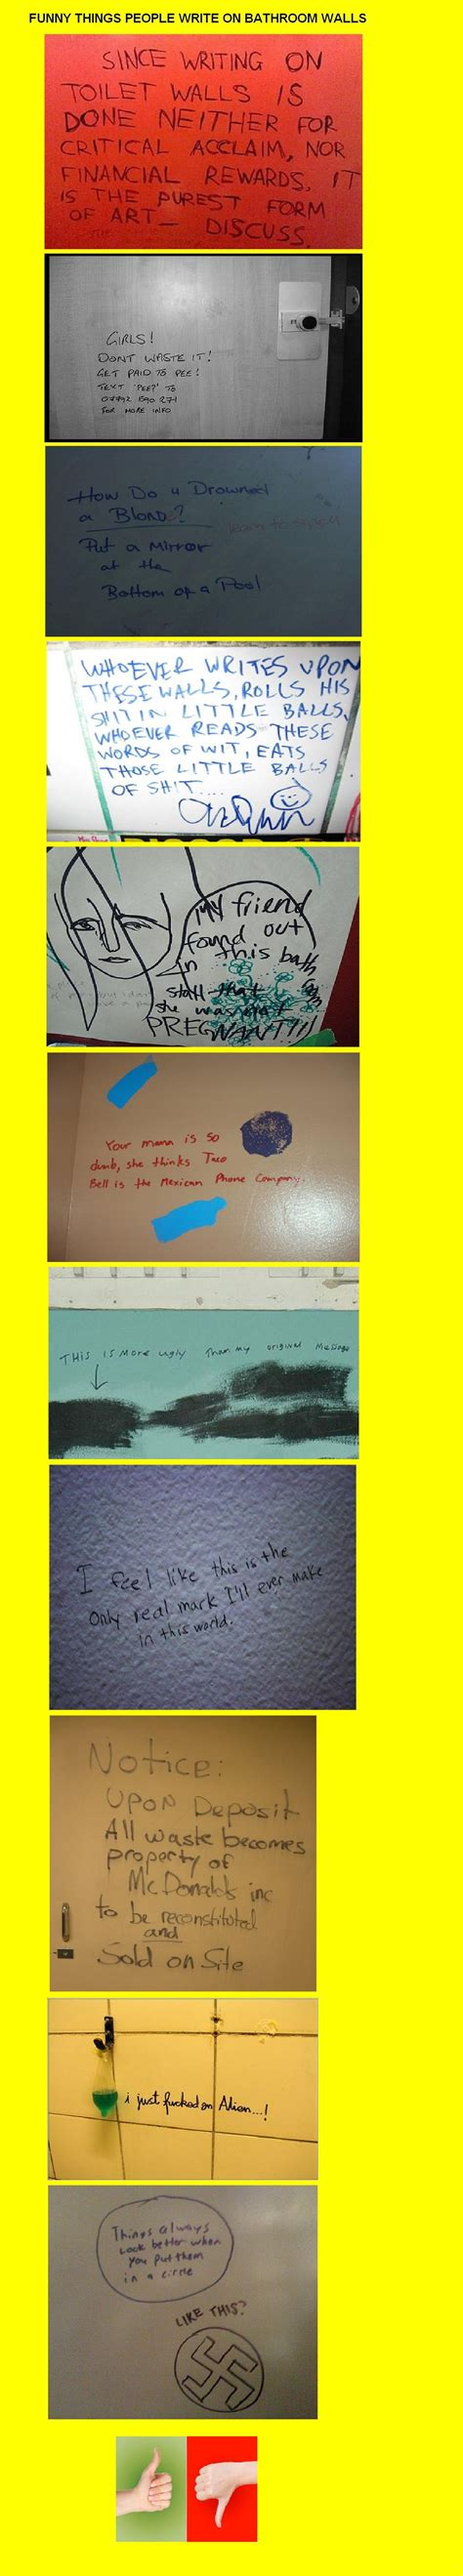 things written on bathroom walls funny things people write on bathroom wallsse writing quvoilht walls is domefor cr